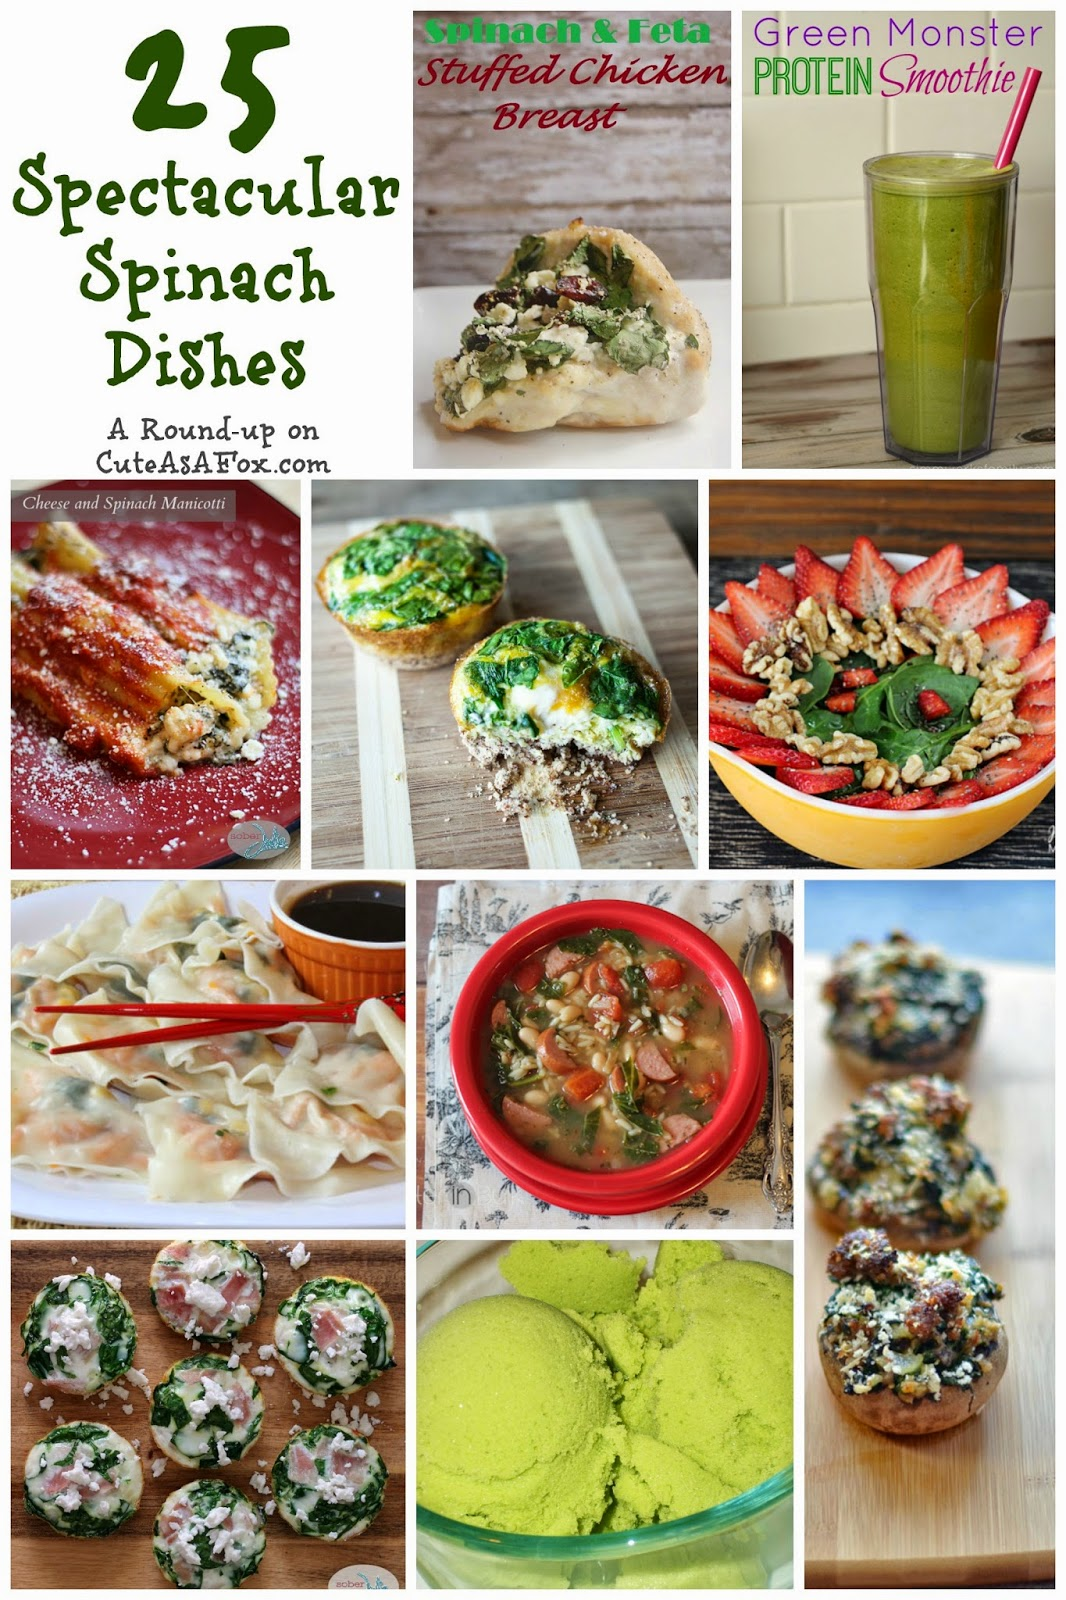 http://1.bp.blogspot.com/-vsae9EaNgLc/U6IR753T22I/AAAAAAAAJ0E/on-waNLgDUw/s1600/25-spinach-dishes-round-up.jpg